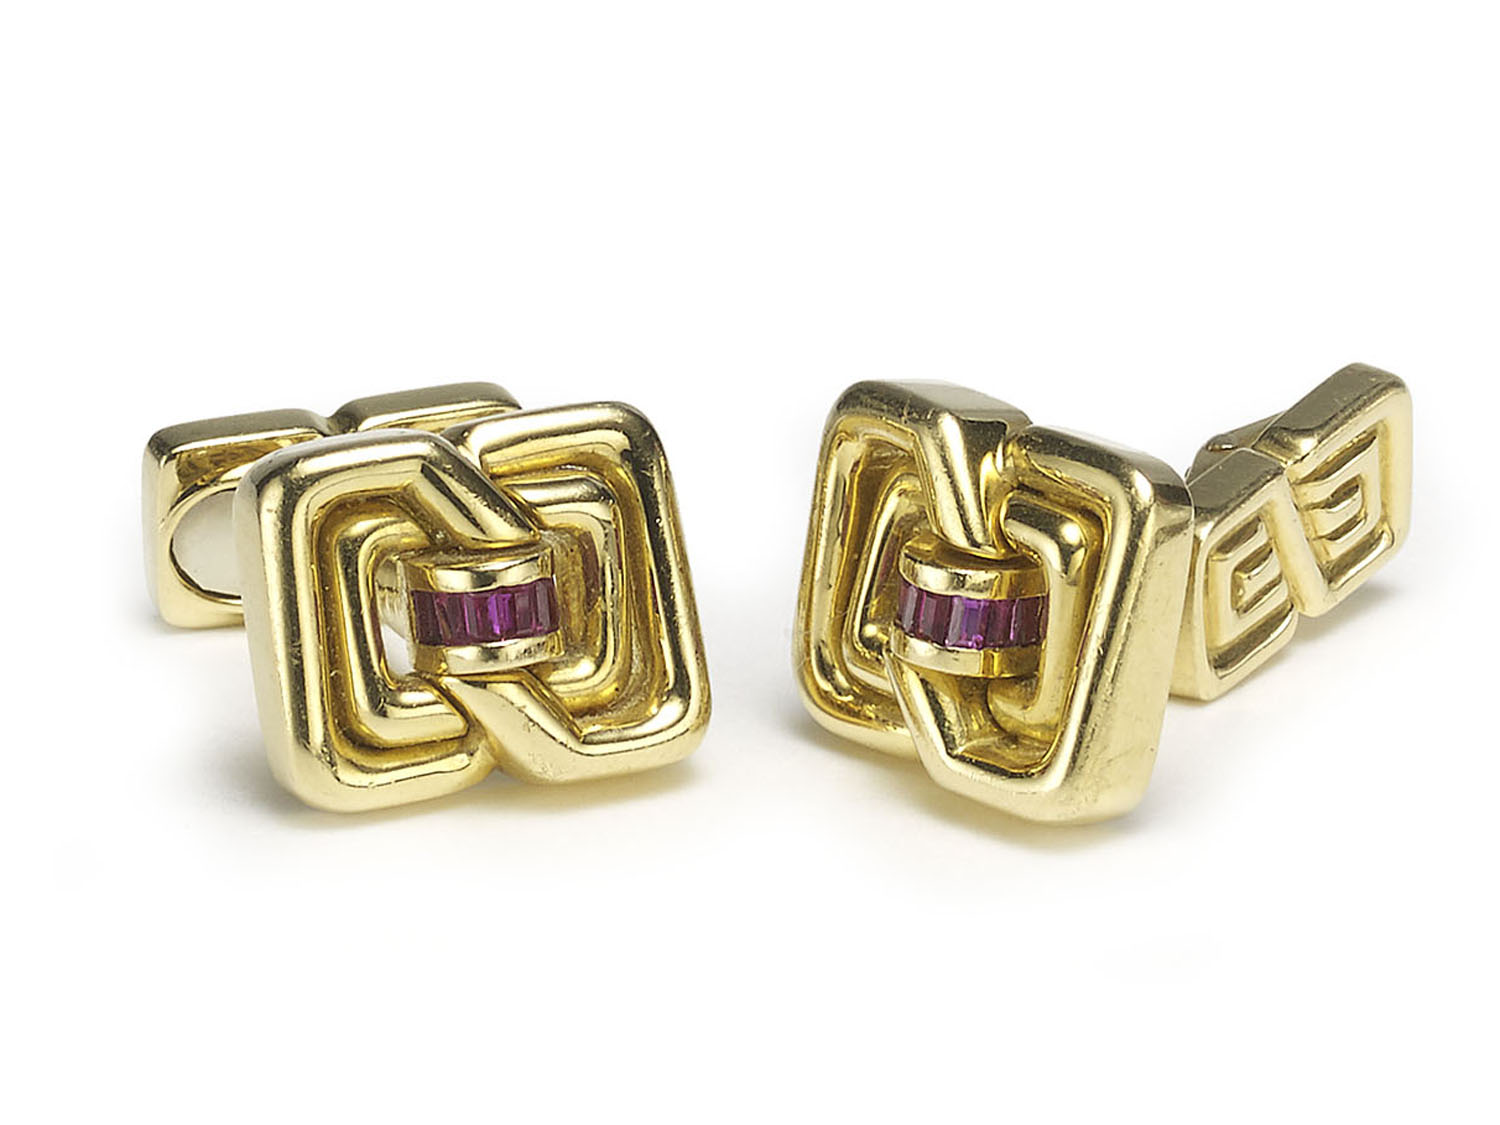 Vintage Tiffany & Co. Gold Cufflinks